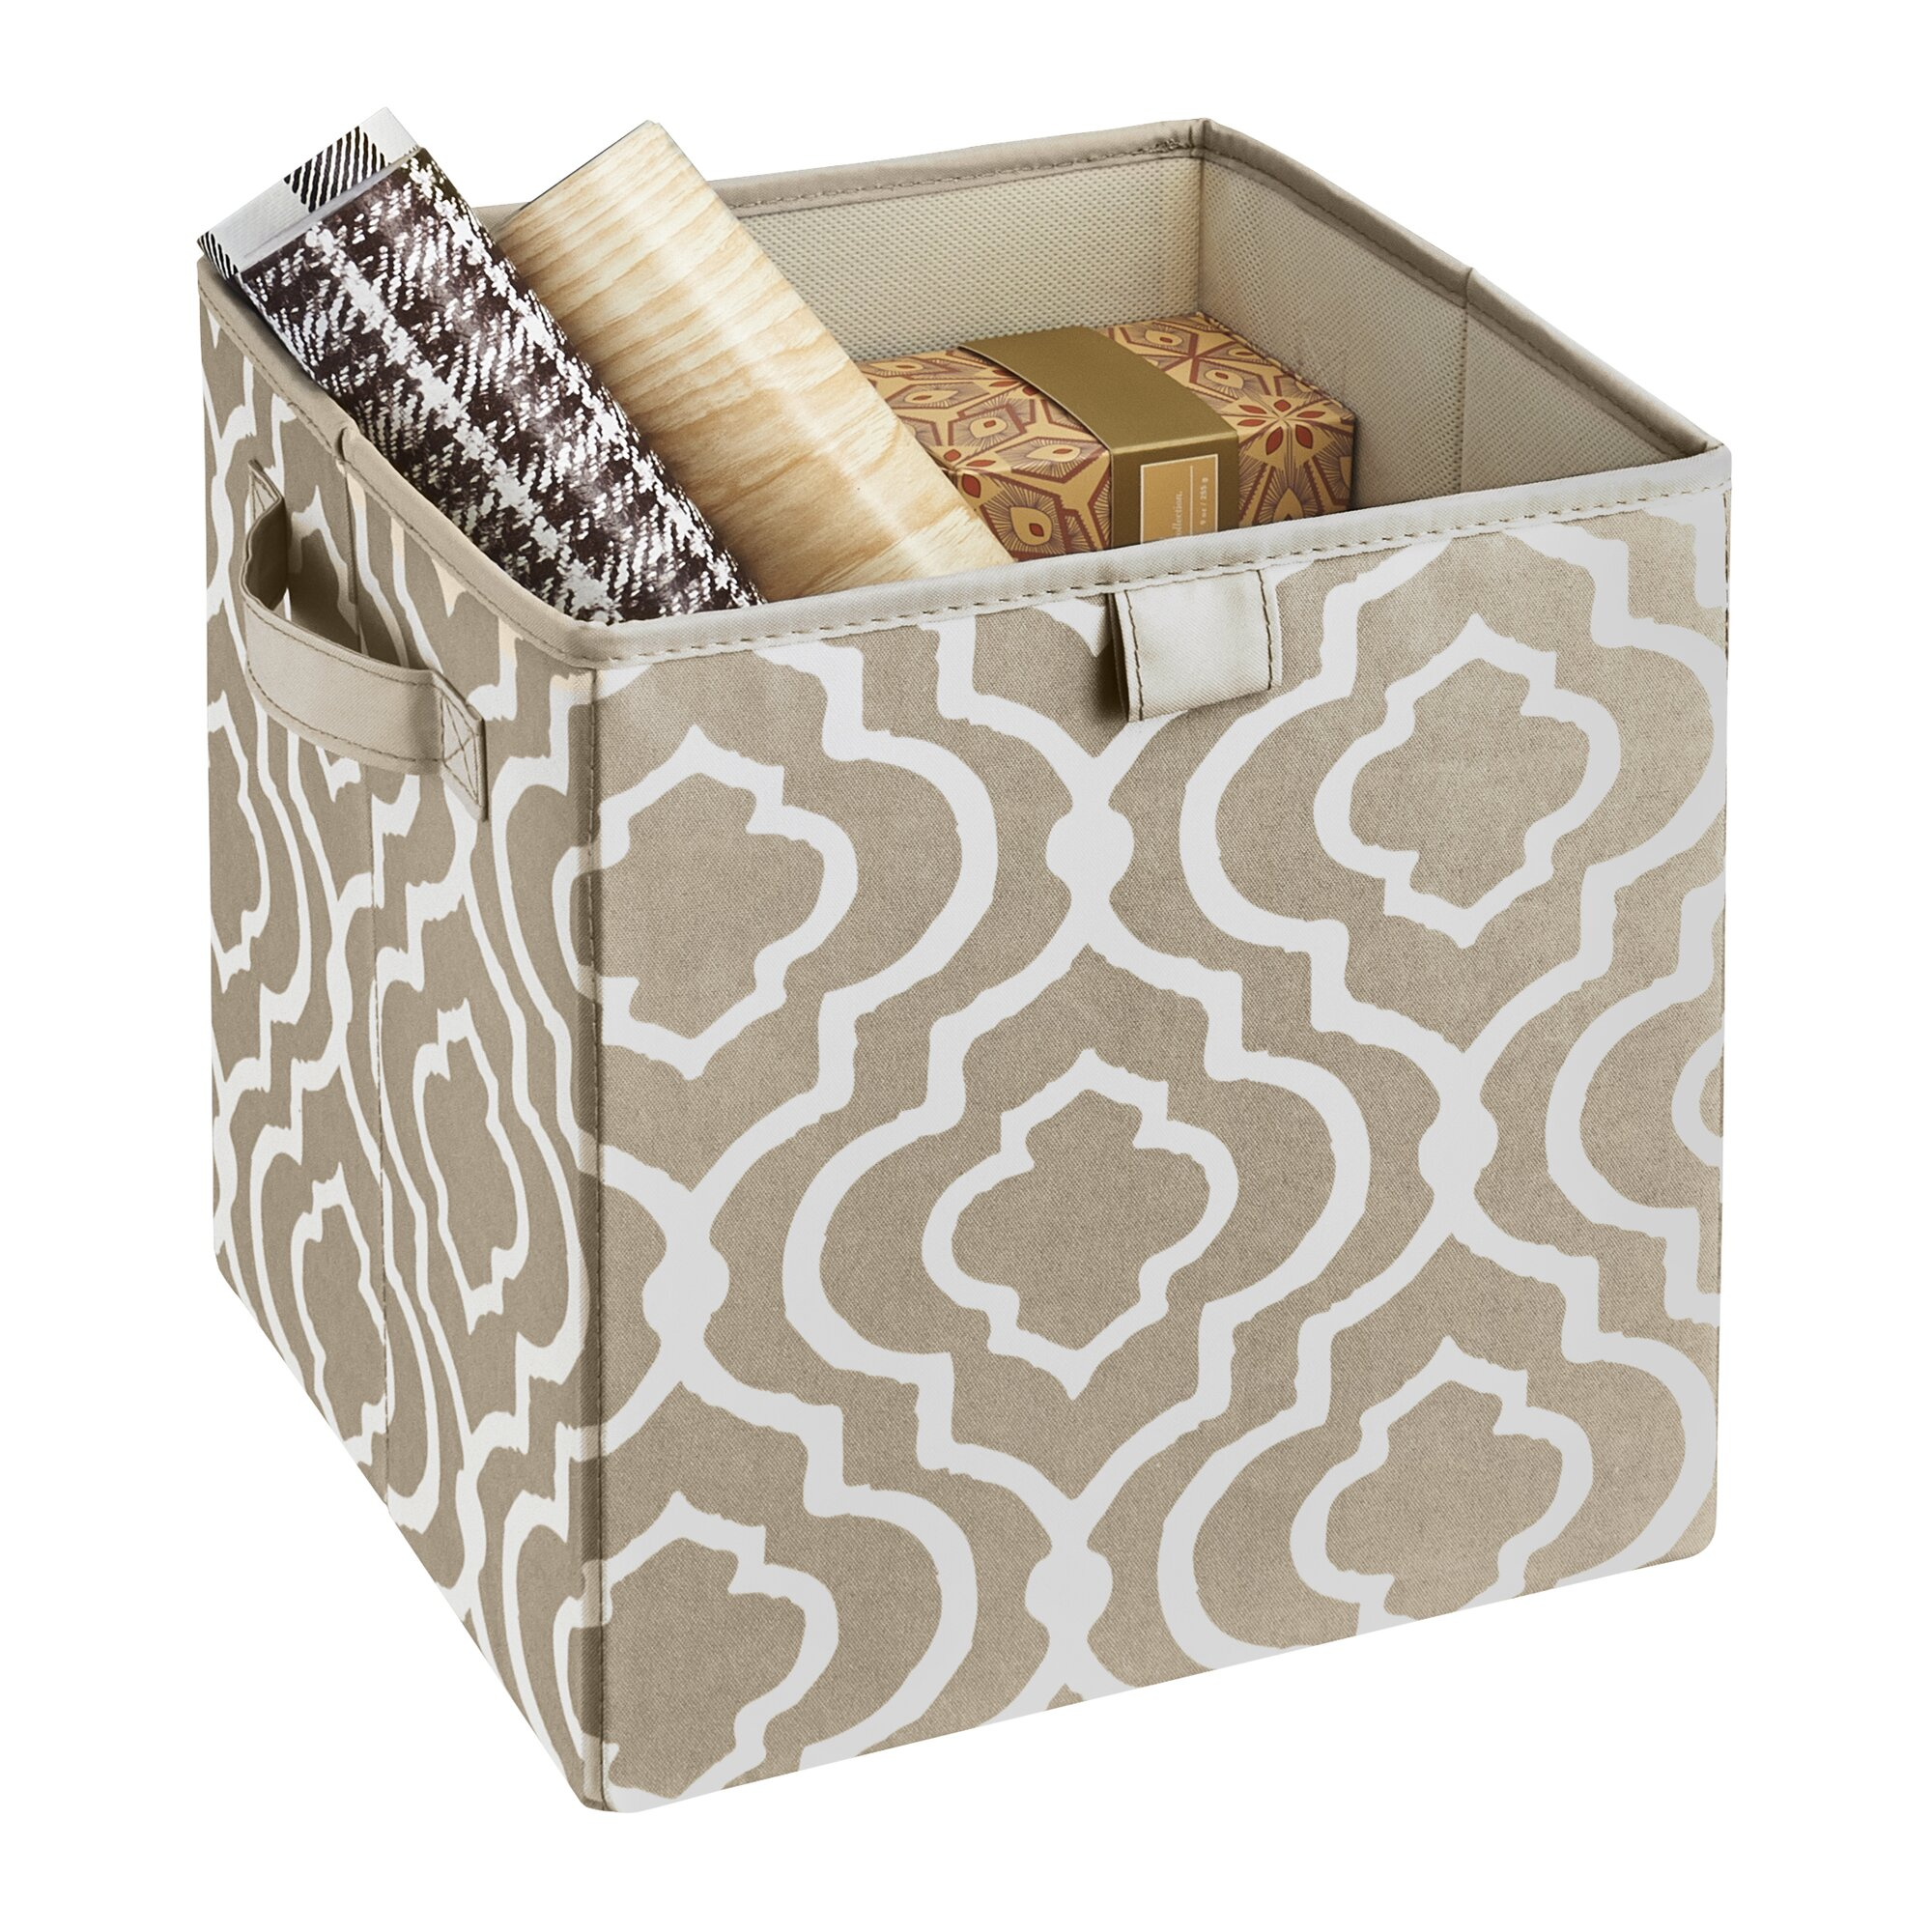 premium 2 handle storage bin in graystone - Decorative Storage Bins